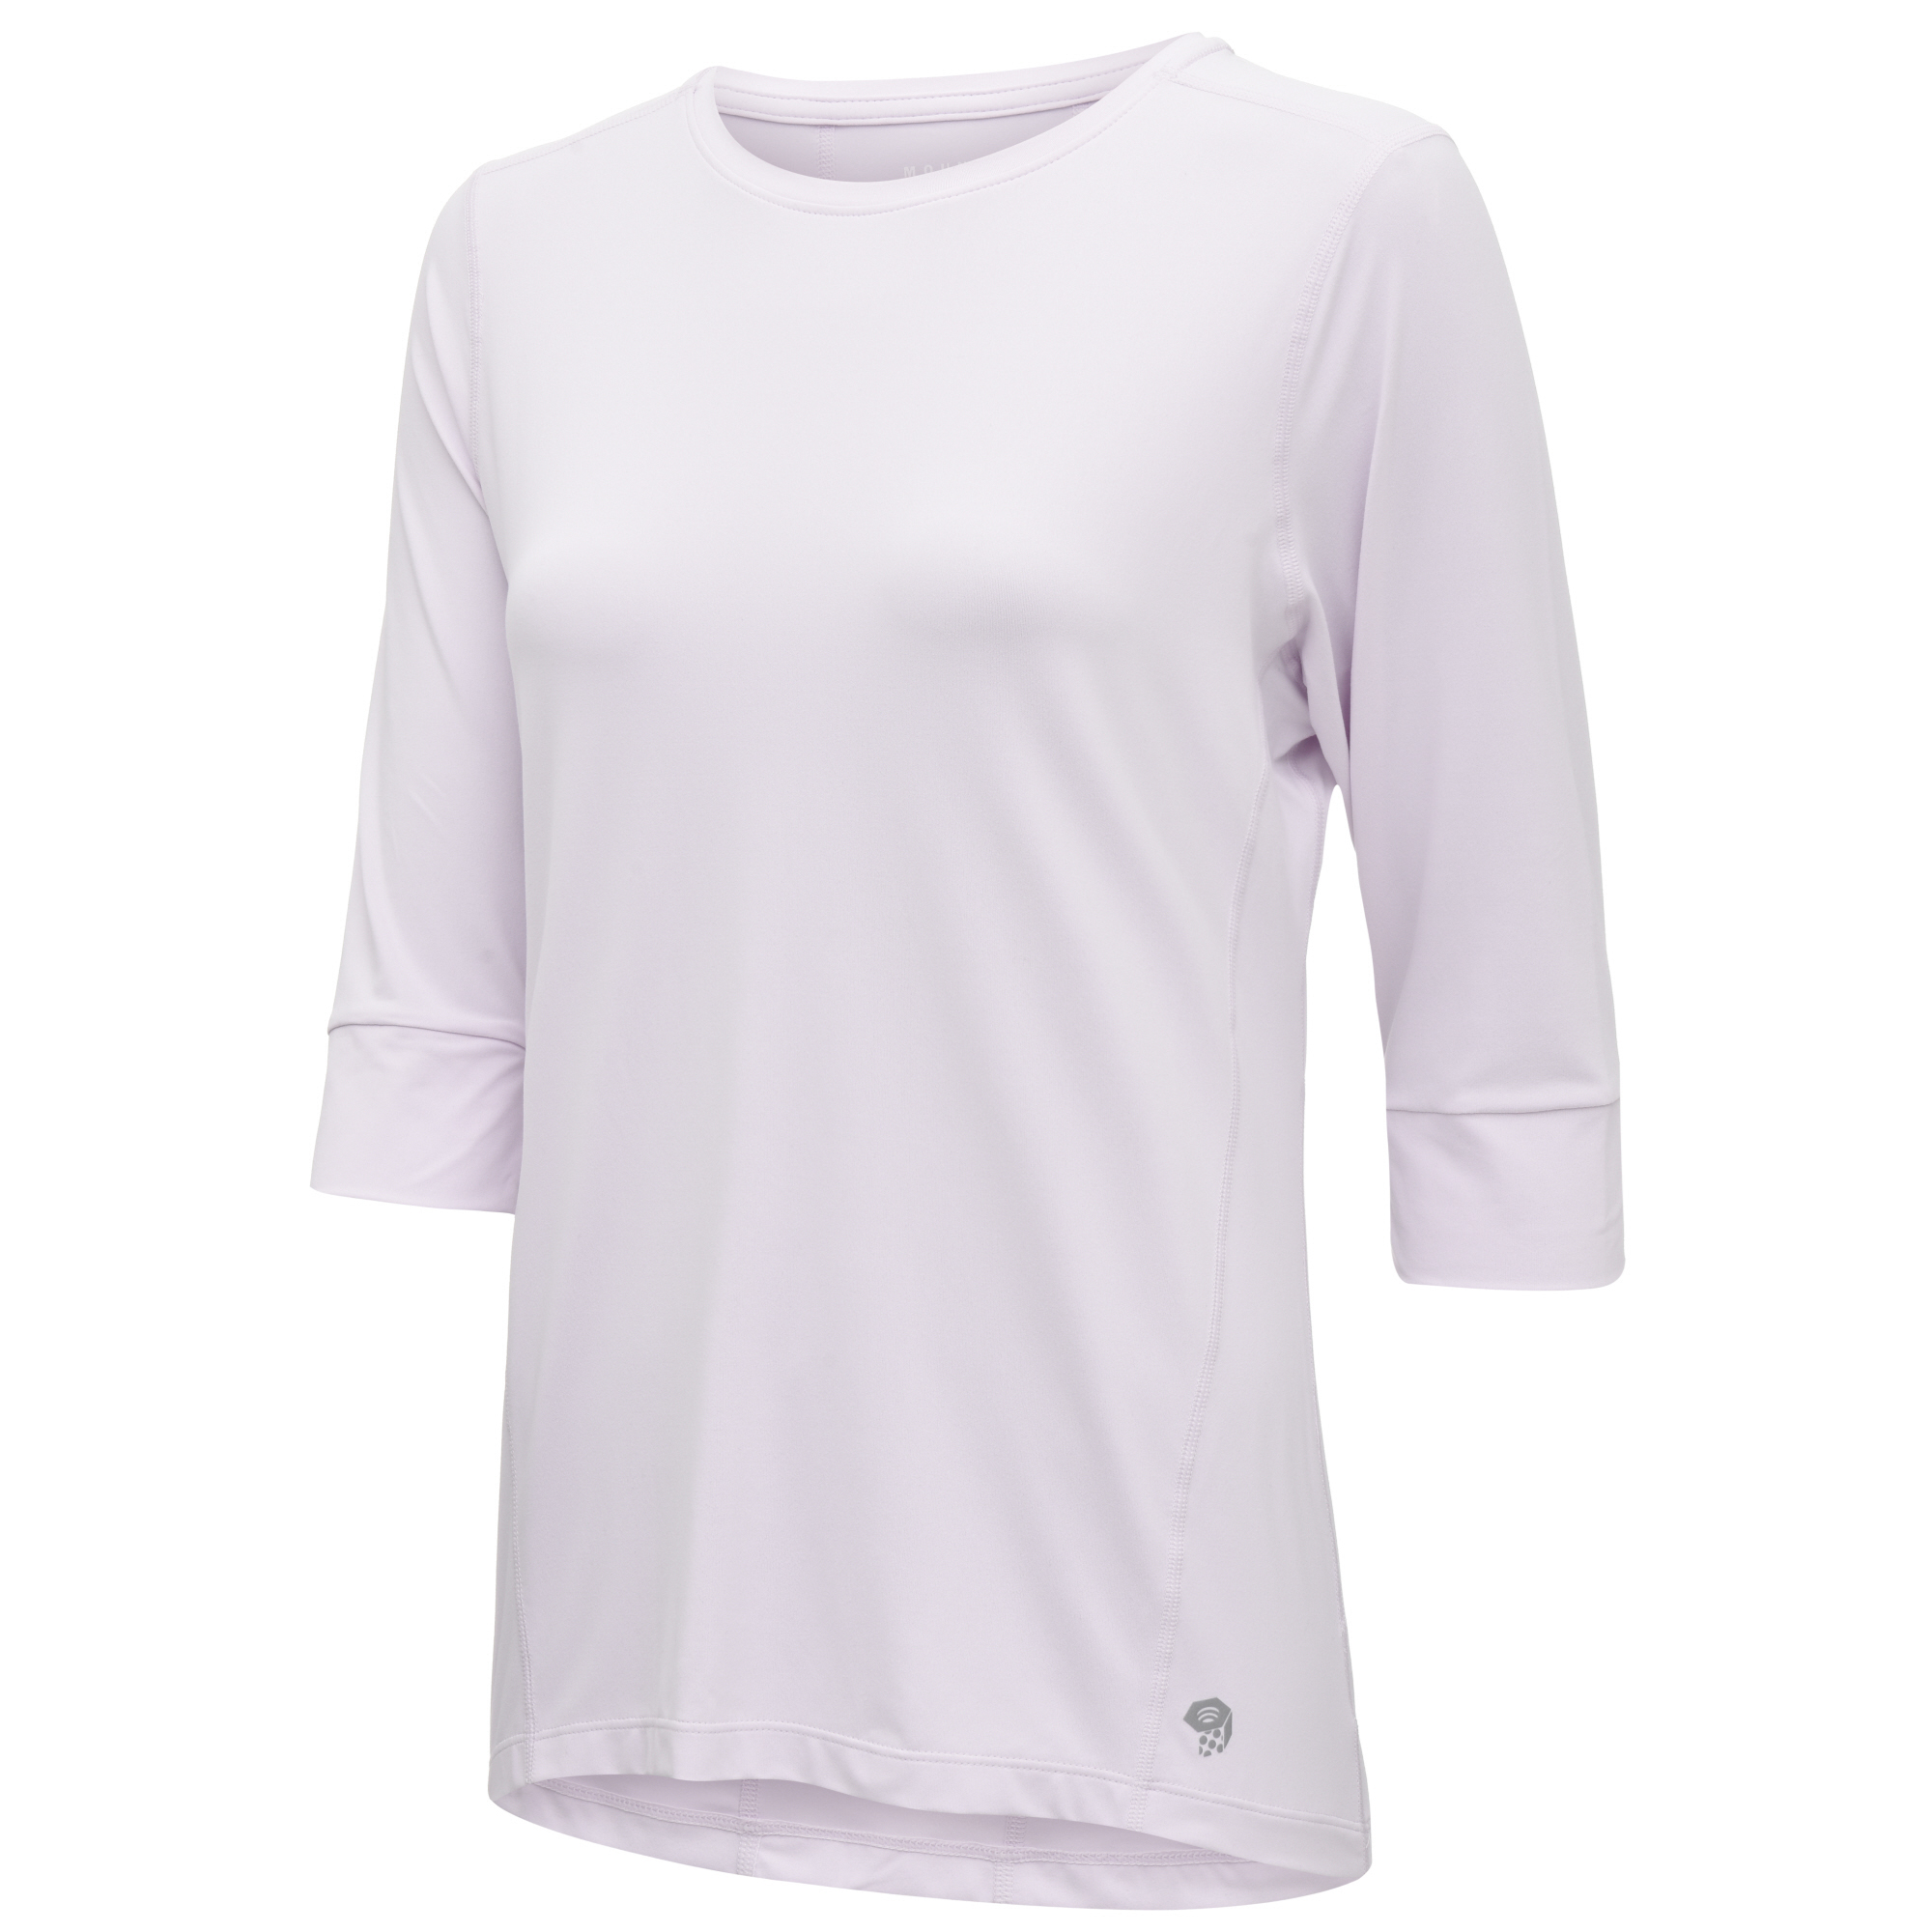 Mountain Hardwear Women's Crater Lake™ 3/4 Crew | Jerseys